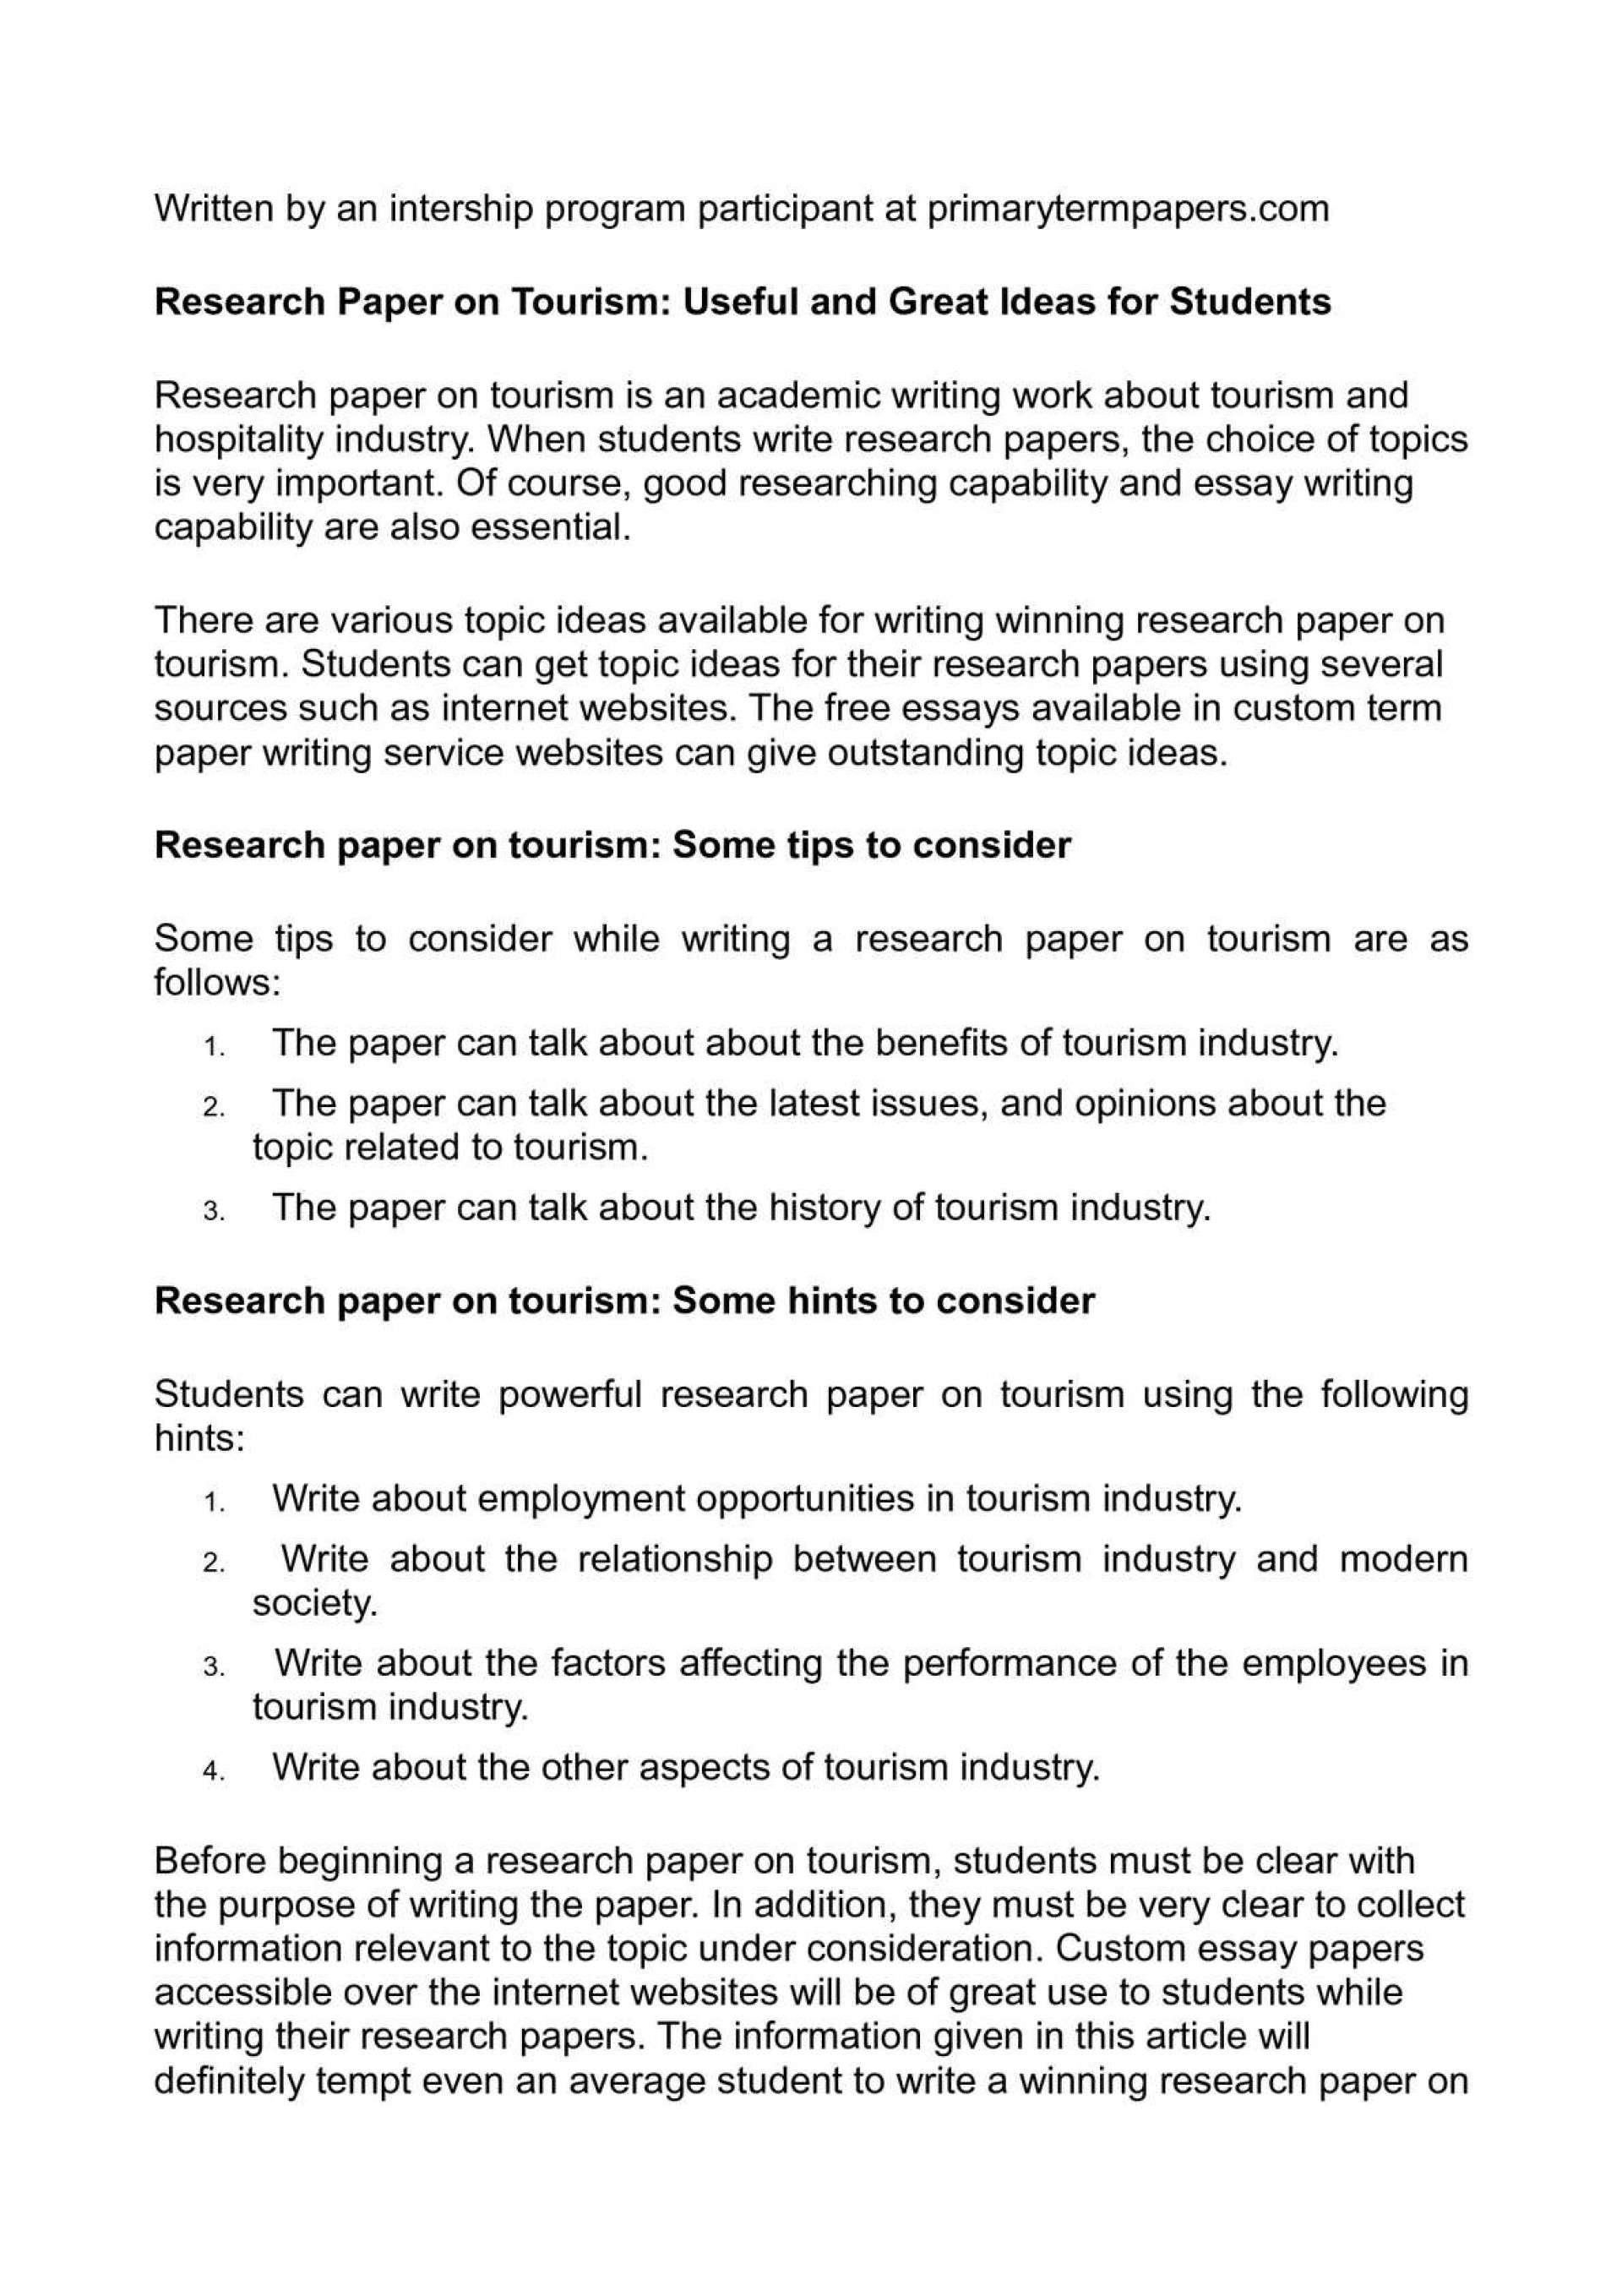 002 Ideas To Write Research Paper On Dreaded A Good 1920